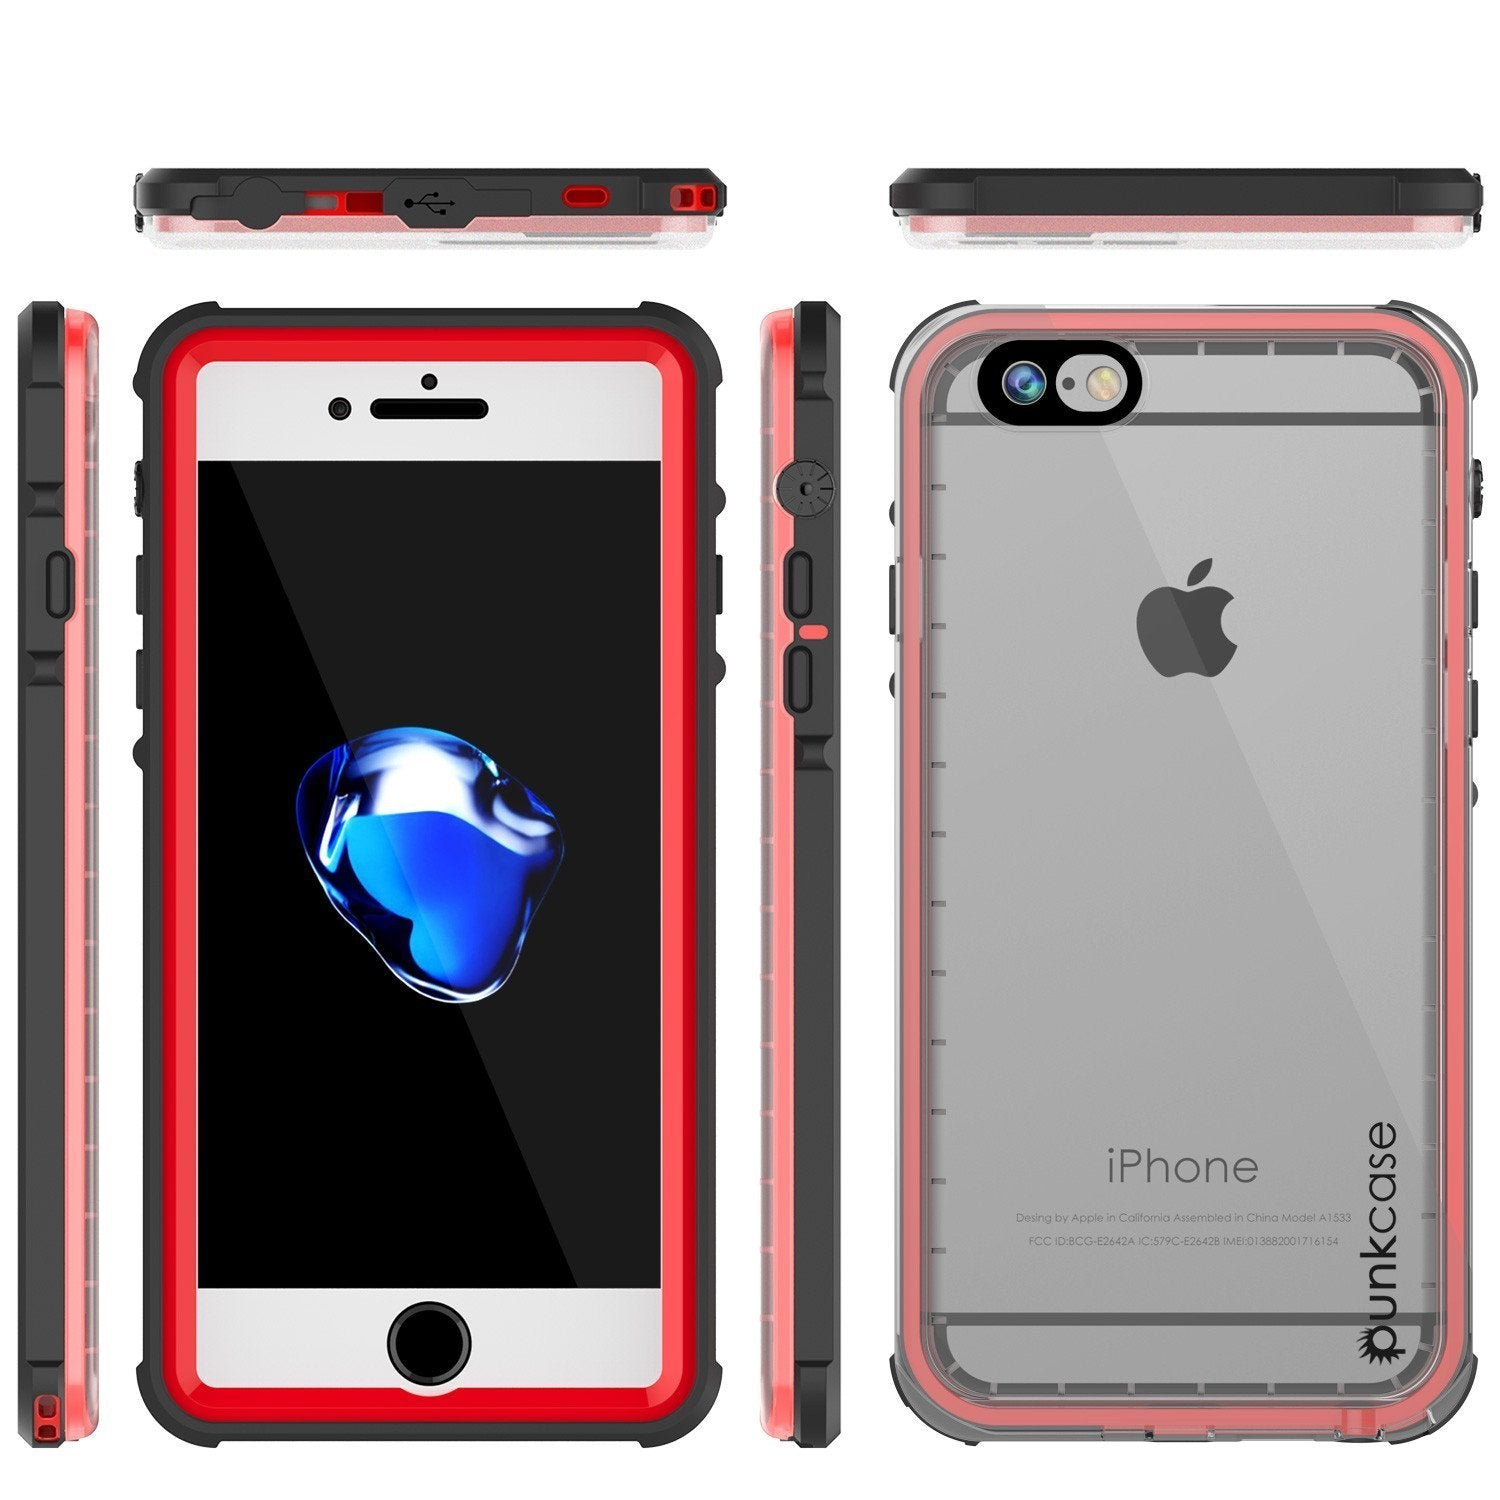 Apple iPhone 8 Waterproof Case, PUNKcase CRYSTAL Red W/ Attached Screen Protector  | Warranty